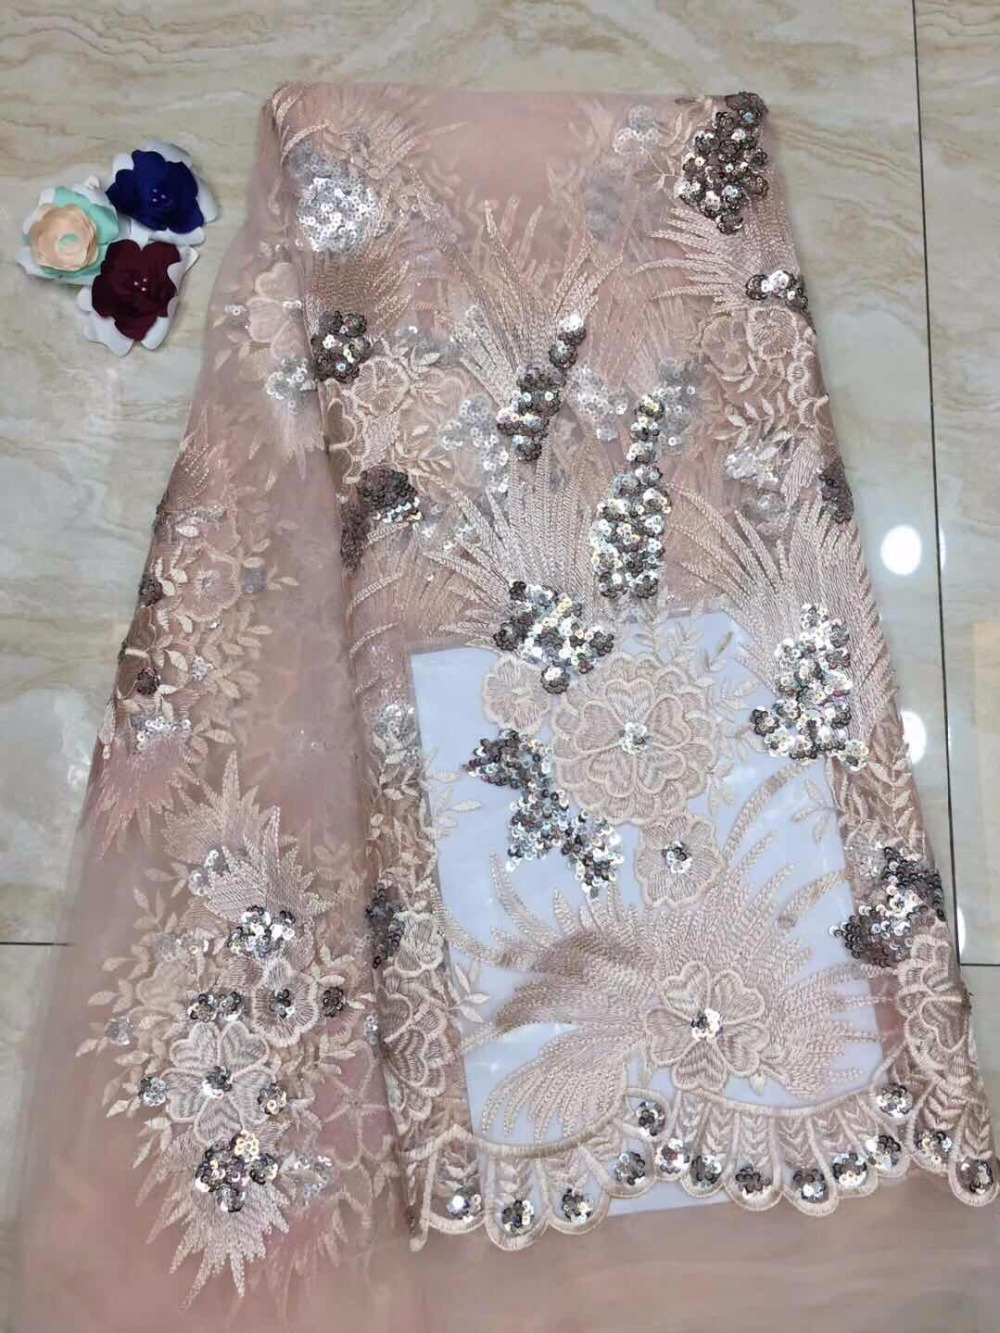 African Sequin Lace Fabric 2019 Embroidered Nigerian Laces Fabric High Quality French Tulle Lace Fabric For Women(5-19African Sequin Lace Fabric 2019 Embroidered Nigerian Laces Fabric High Quality French Tulle Lace Fabric For Women(5-19